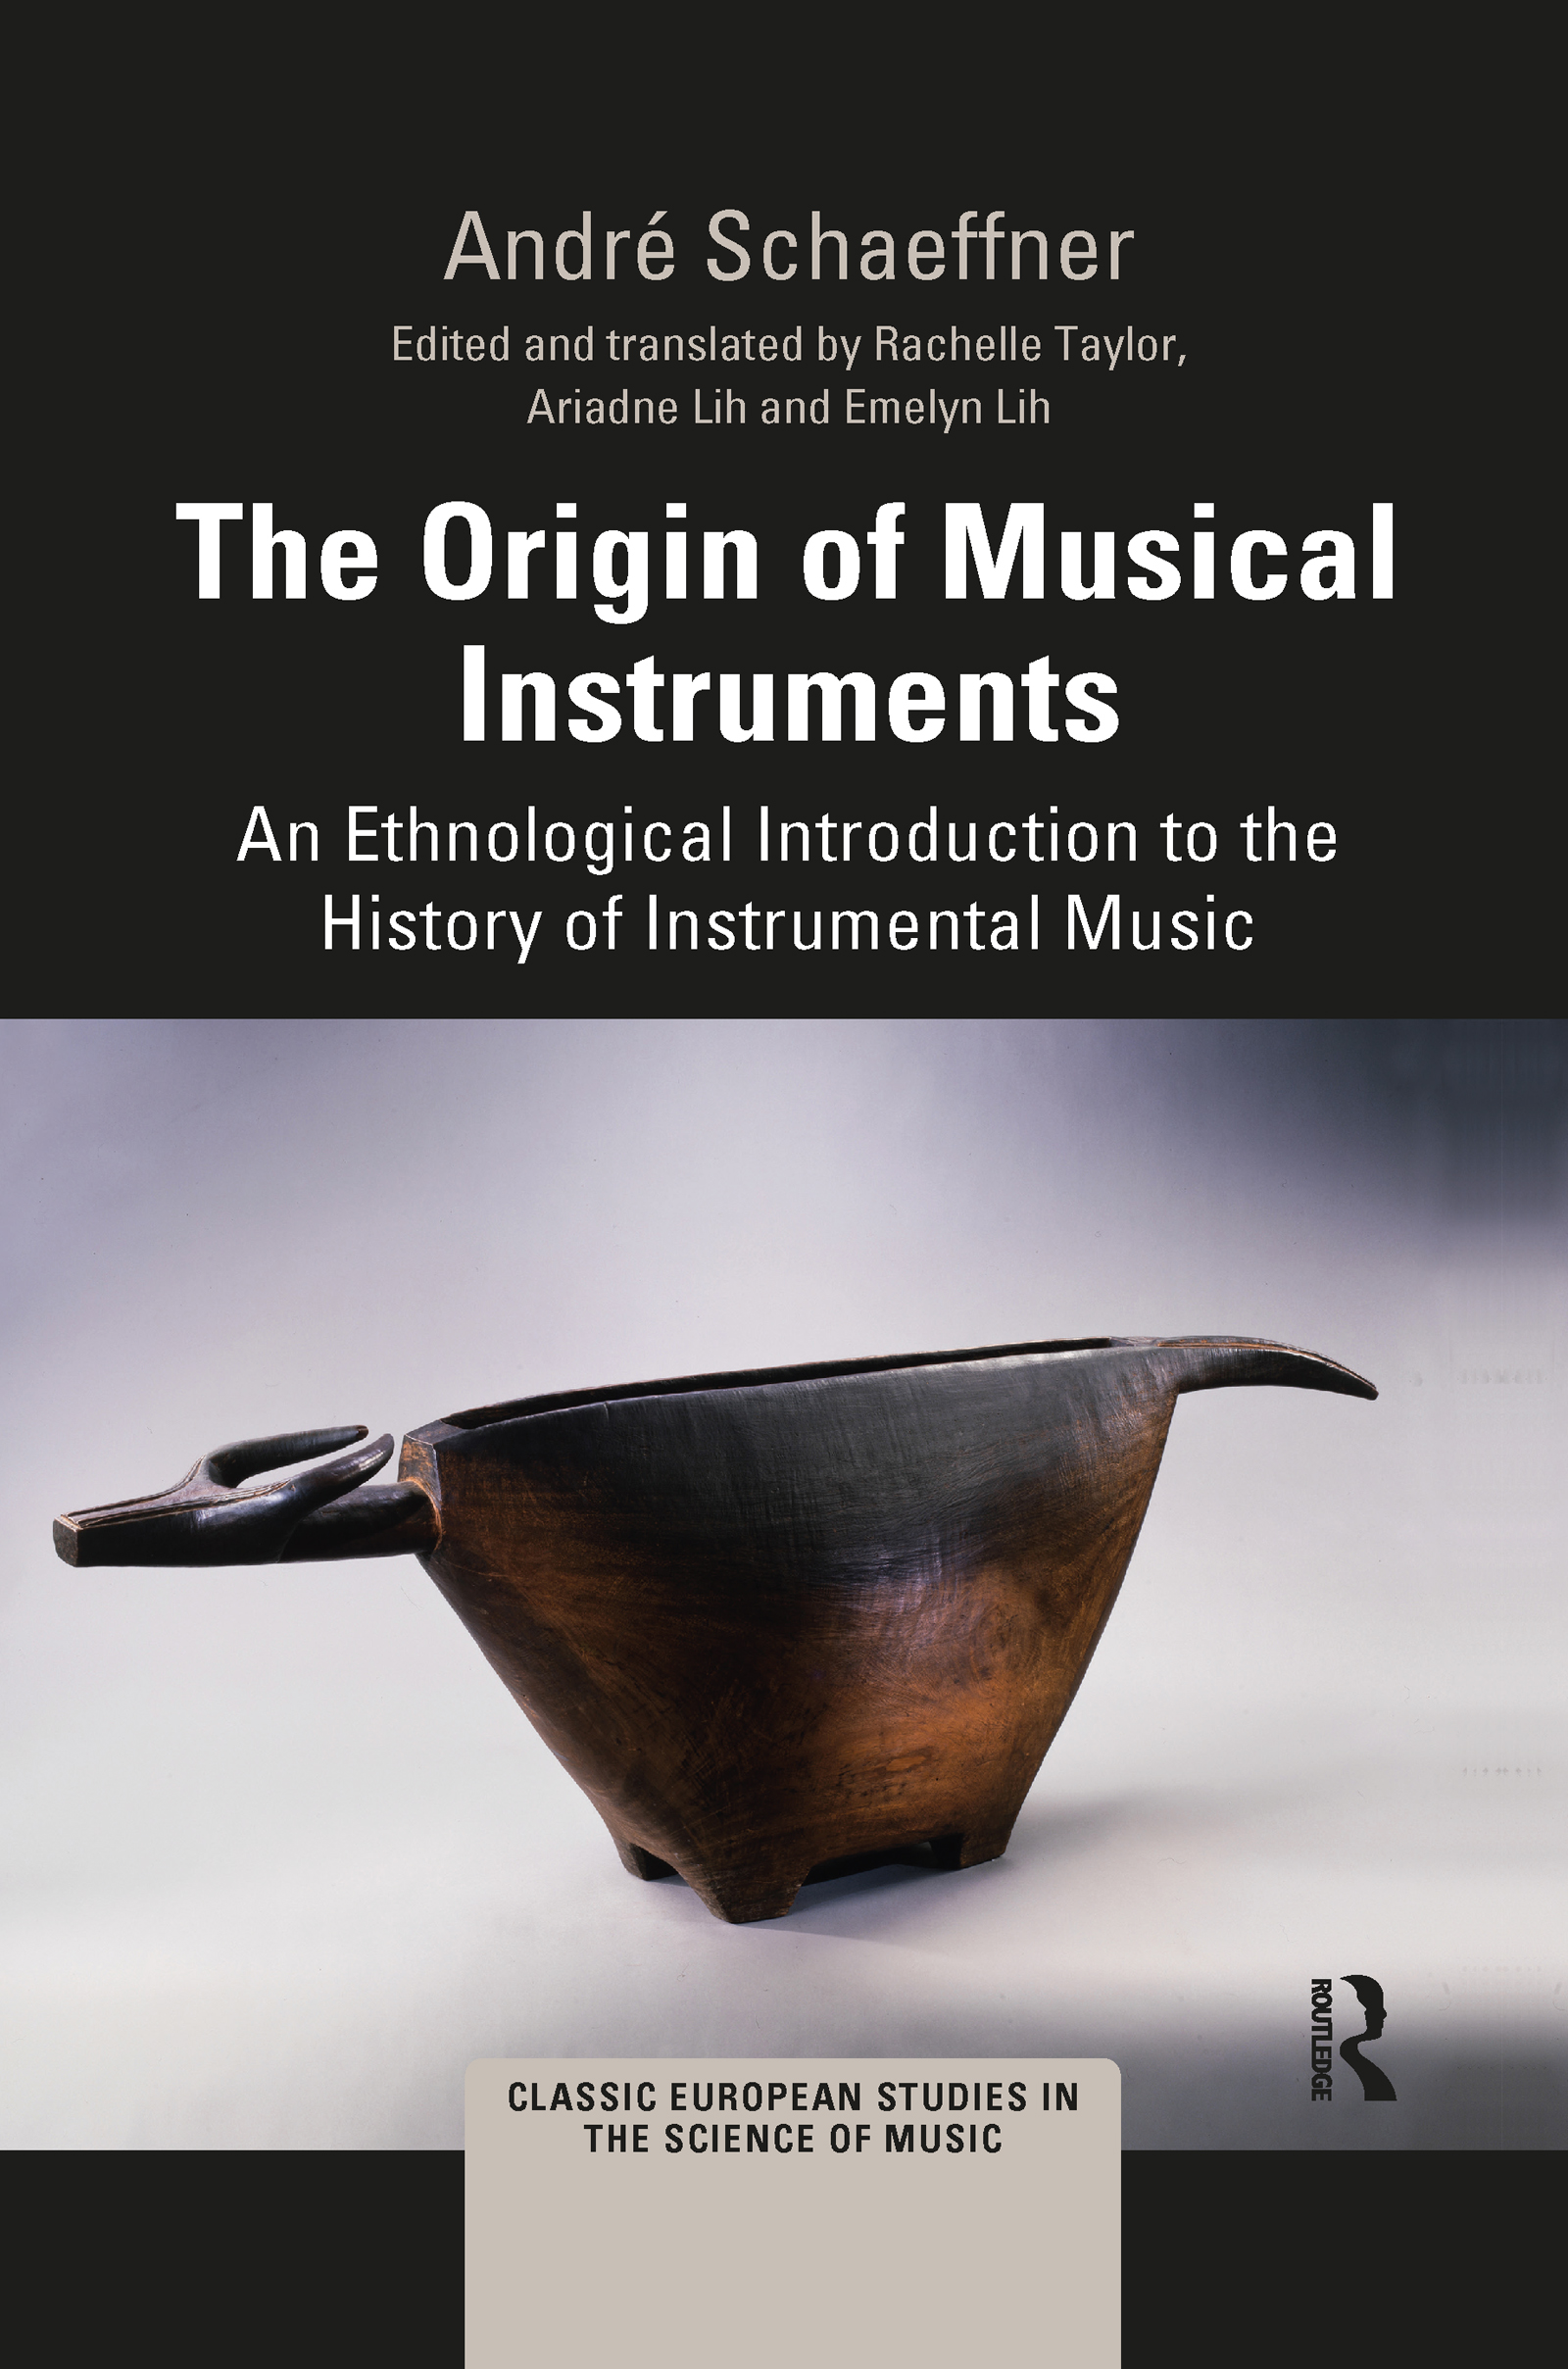 The Origin of Musical Instruments